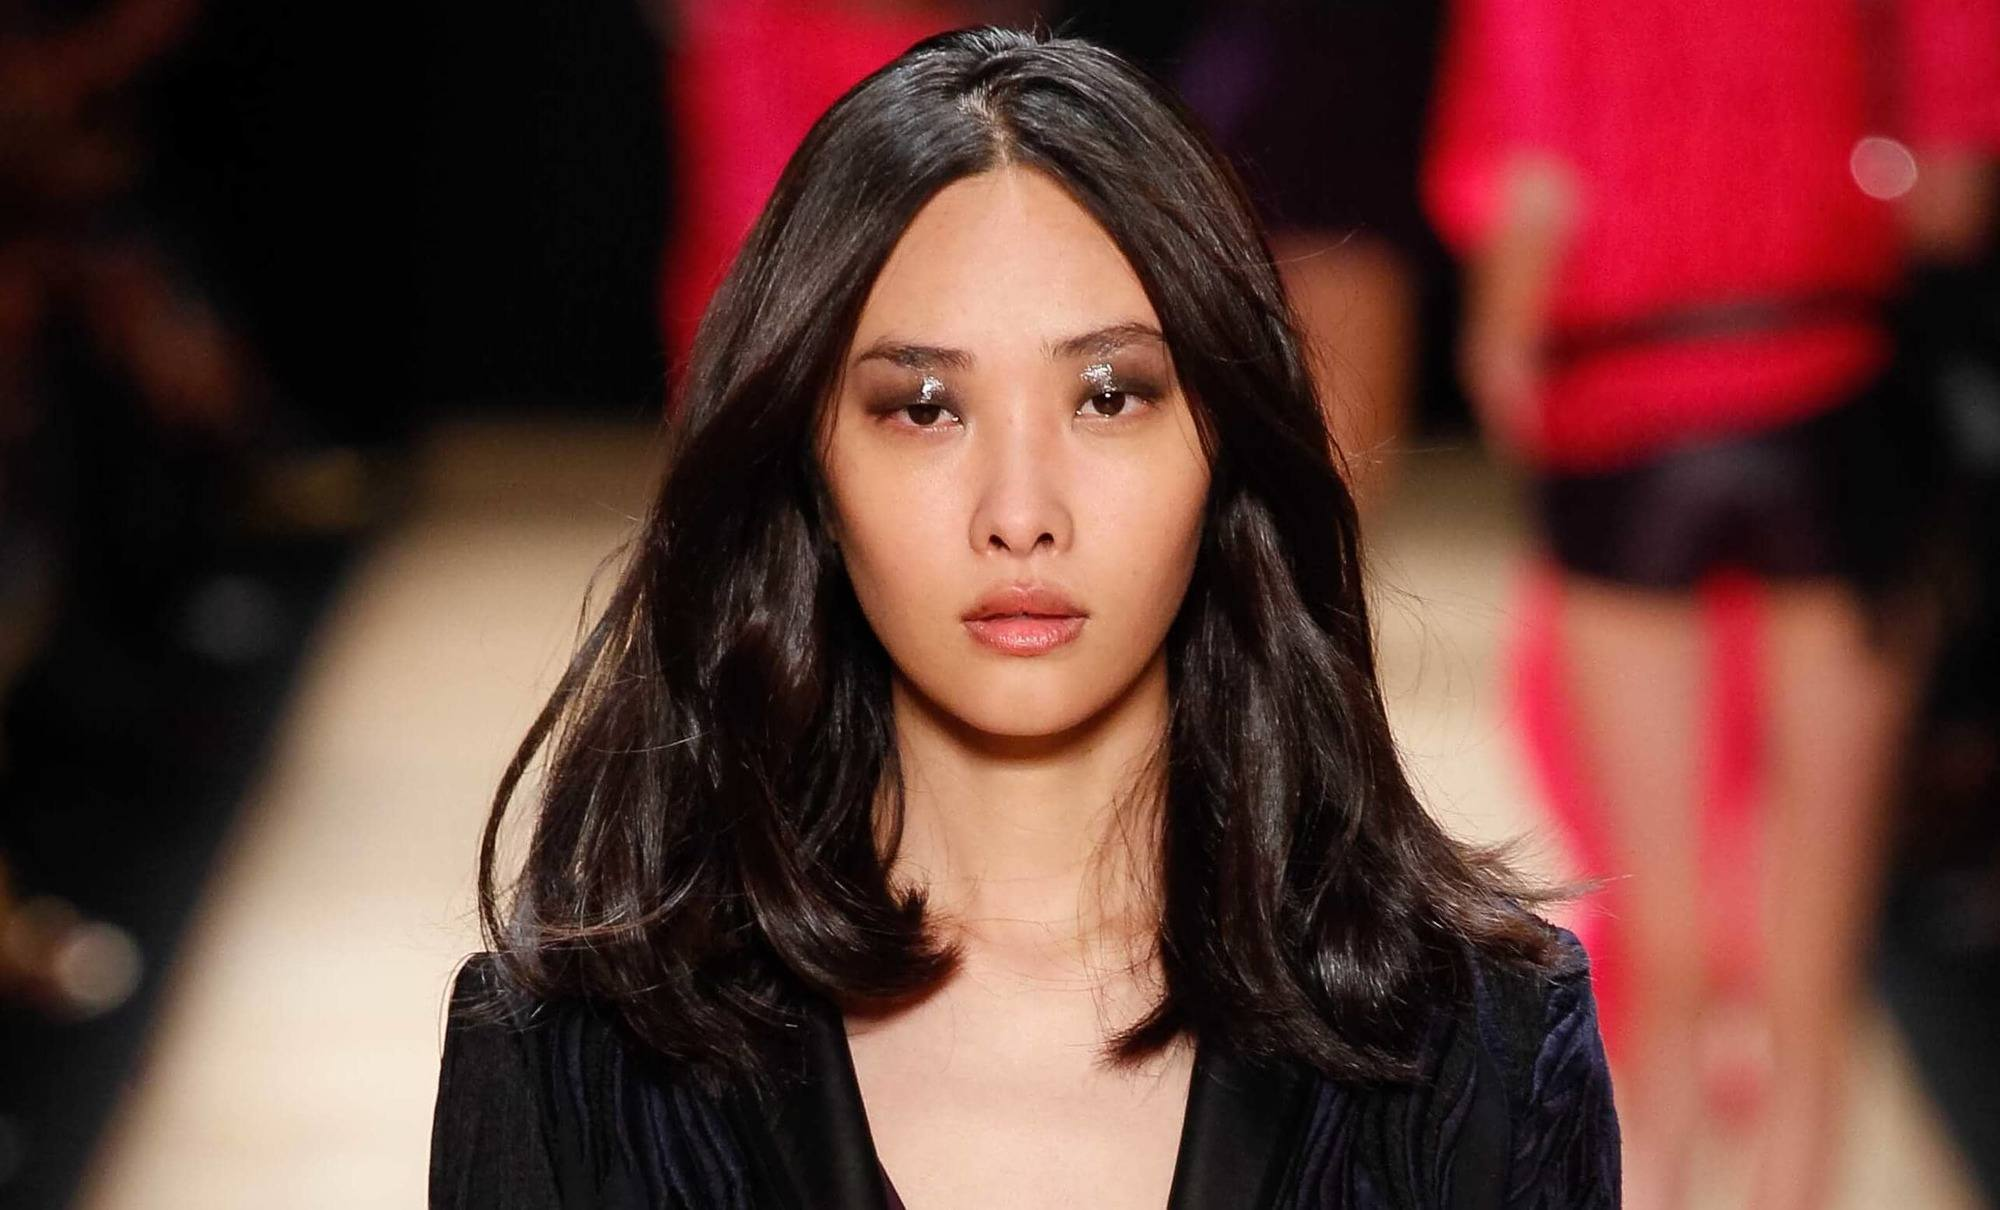 Haircuts For Thick Hair Asian Model On The Runway With Shoulder Length Dark Layered